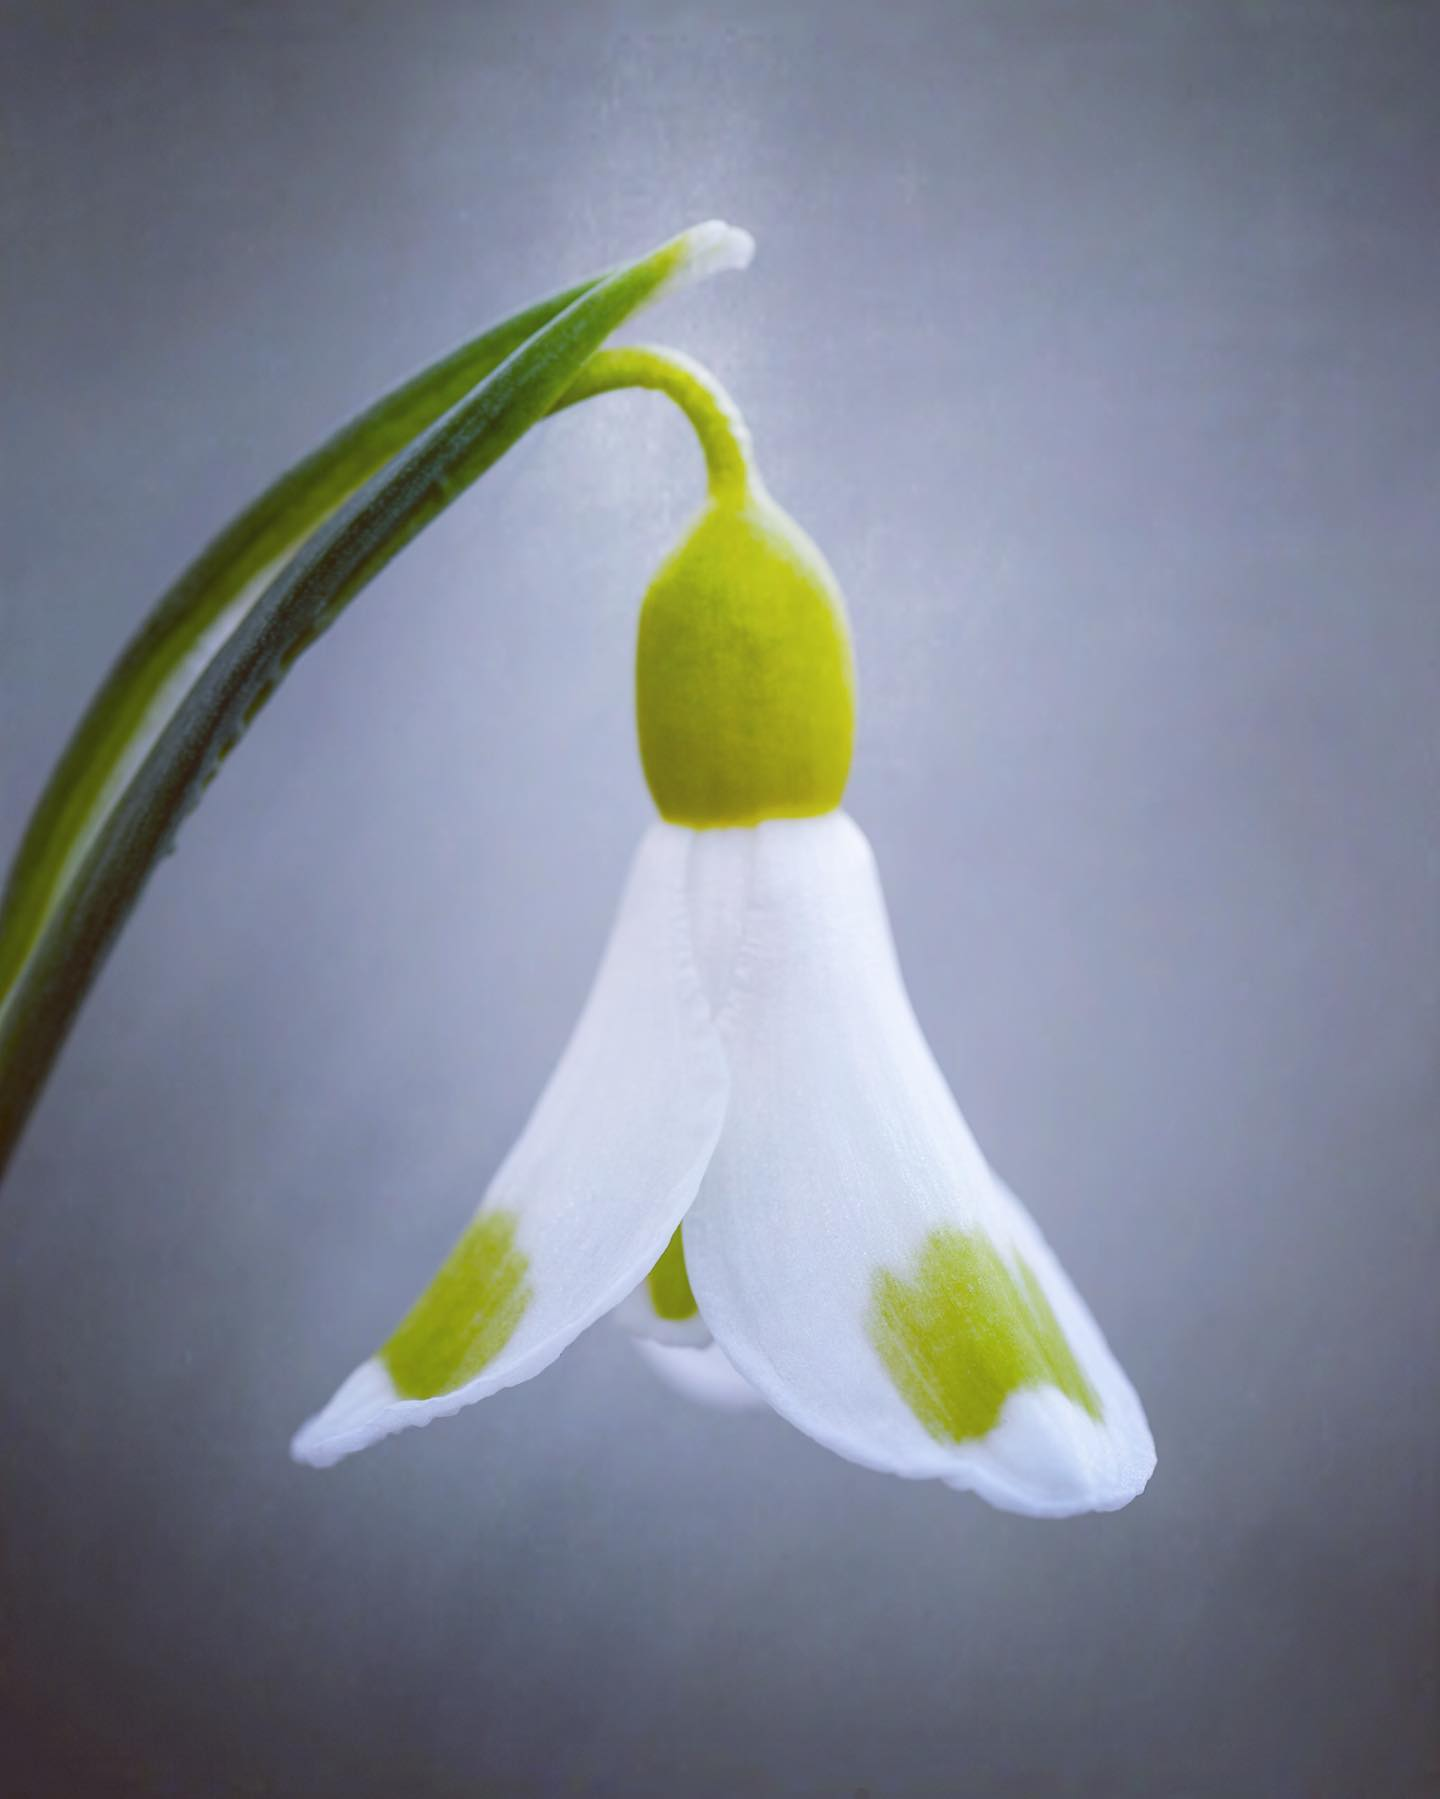 Galanthus 'Golden Fleece', bred by notable nurseryman Joe Sharman. On February 23rd 2015 it was auctioned for an unbelievable £1,390.00. Part of my feature in @gardens_illustrated on propagating Snowdrops this month. Brilliantly written by Rory Dusoir @kennedysongdusoir ...#galanthus #snowdrops #snowdrop #rorydusoir #gardensillustrated #winterbulbs #galanthusgoldenfleece #gardenphotography #gardenphotographer #plantphotography #plantphotographer #nikon #nikonphotography #nikonphotographer #joesharman